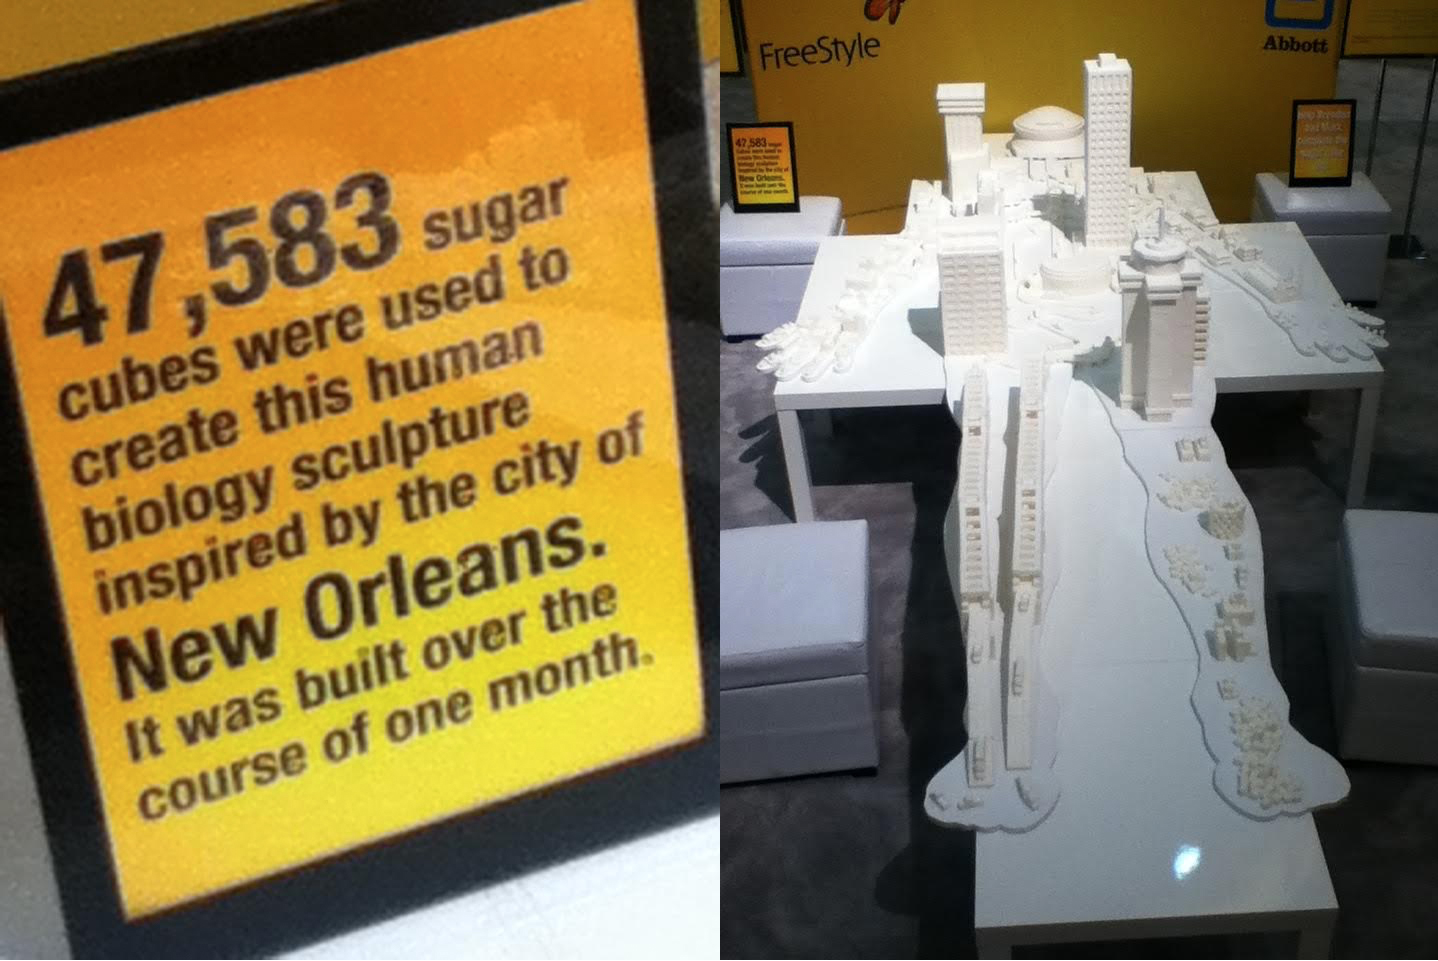 Sugar Cube display